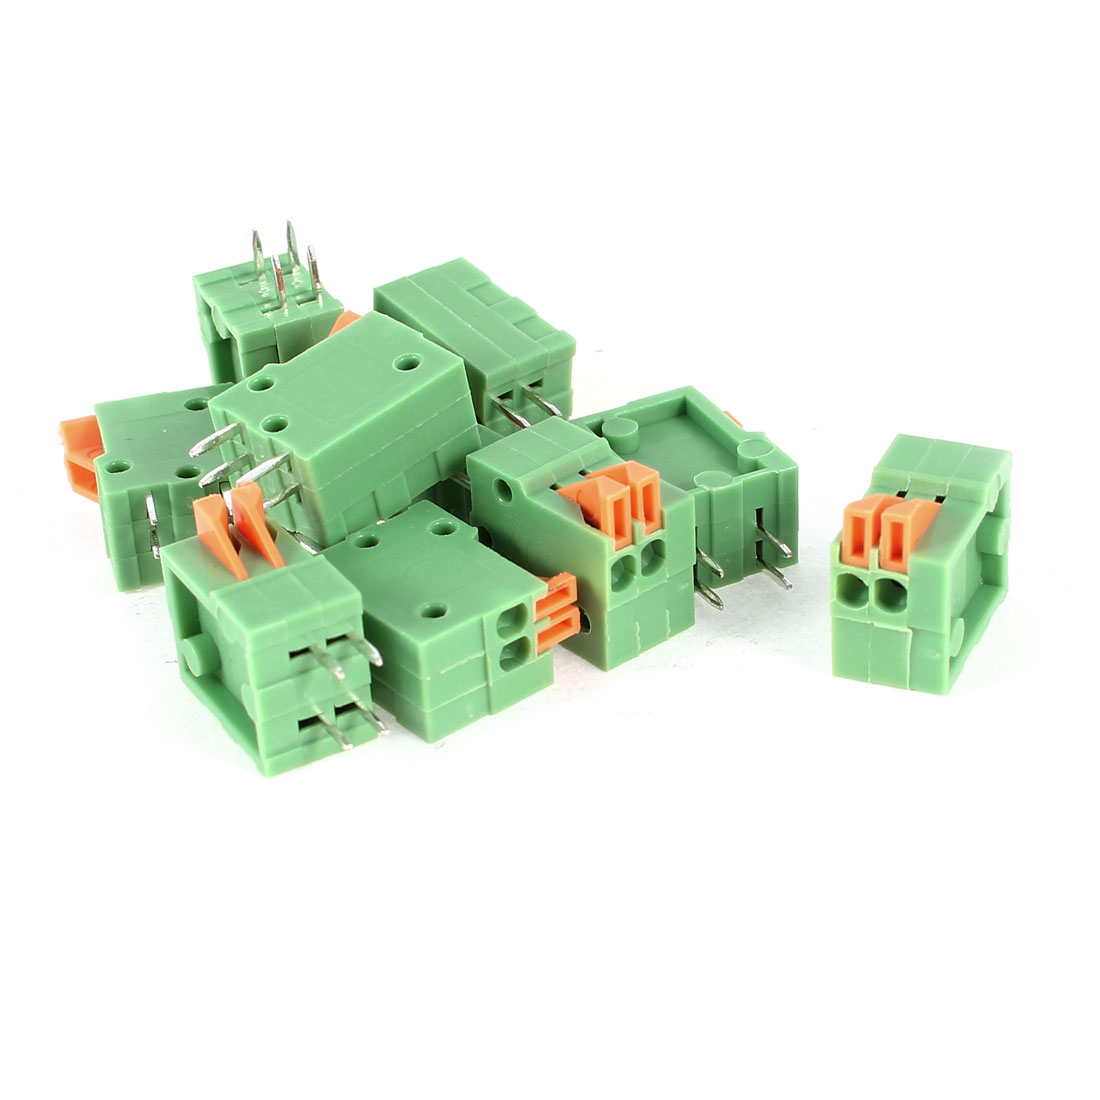 10 Pcs Straight 2 Pin 2.54mm Pitch Spacing PCB Mount Type Spring Terminal Blocks Connectors AC 150V 2A